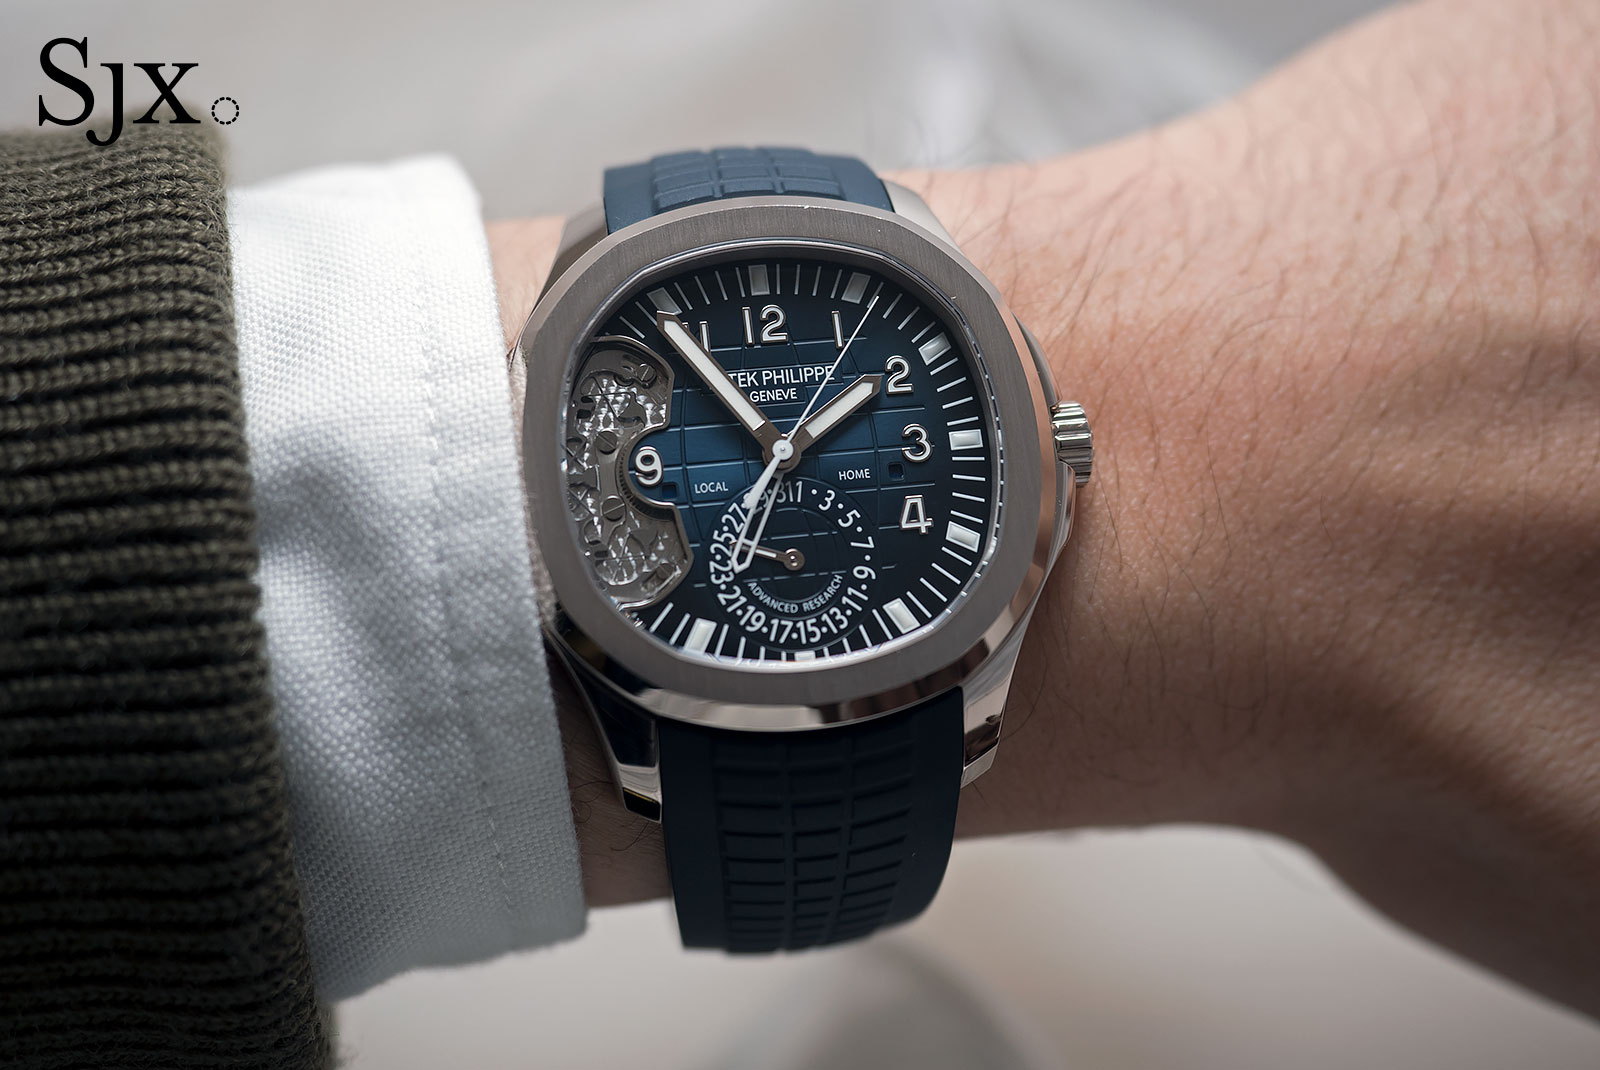 Explaining The Patek Philippe Aquanaut Travel Time Ref 5650g